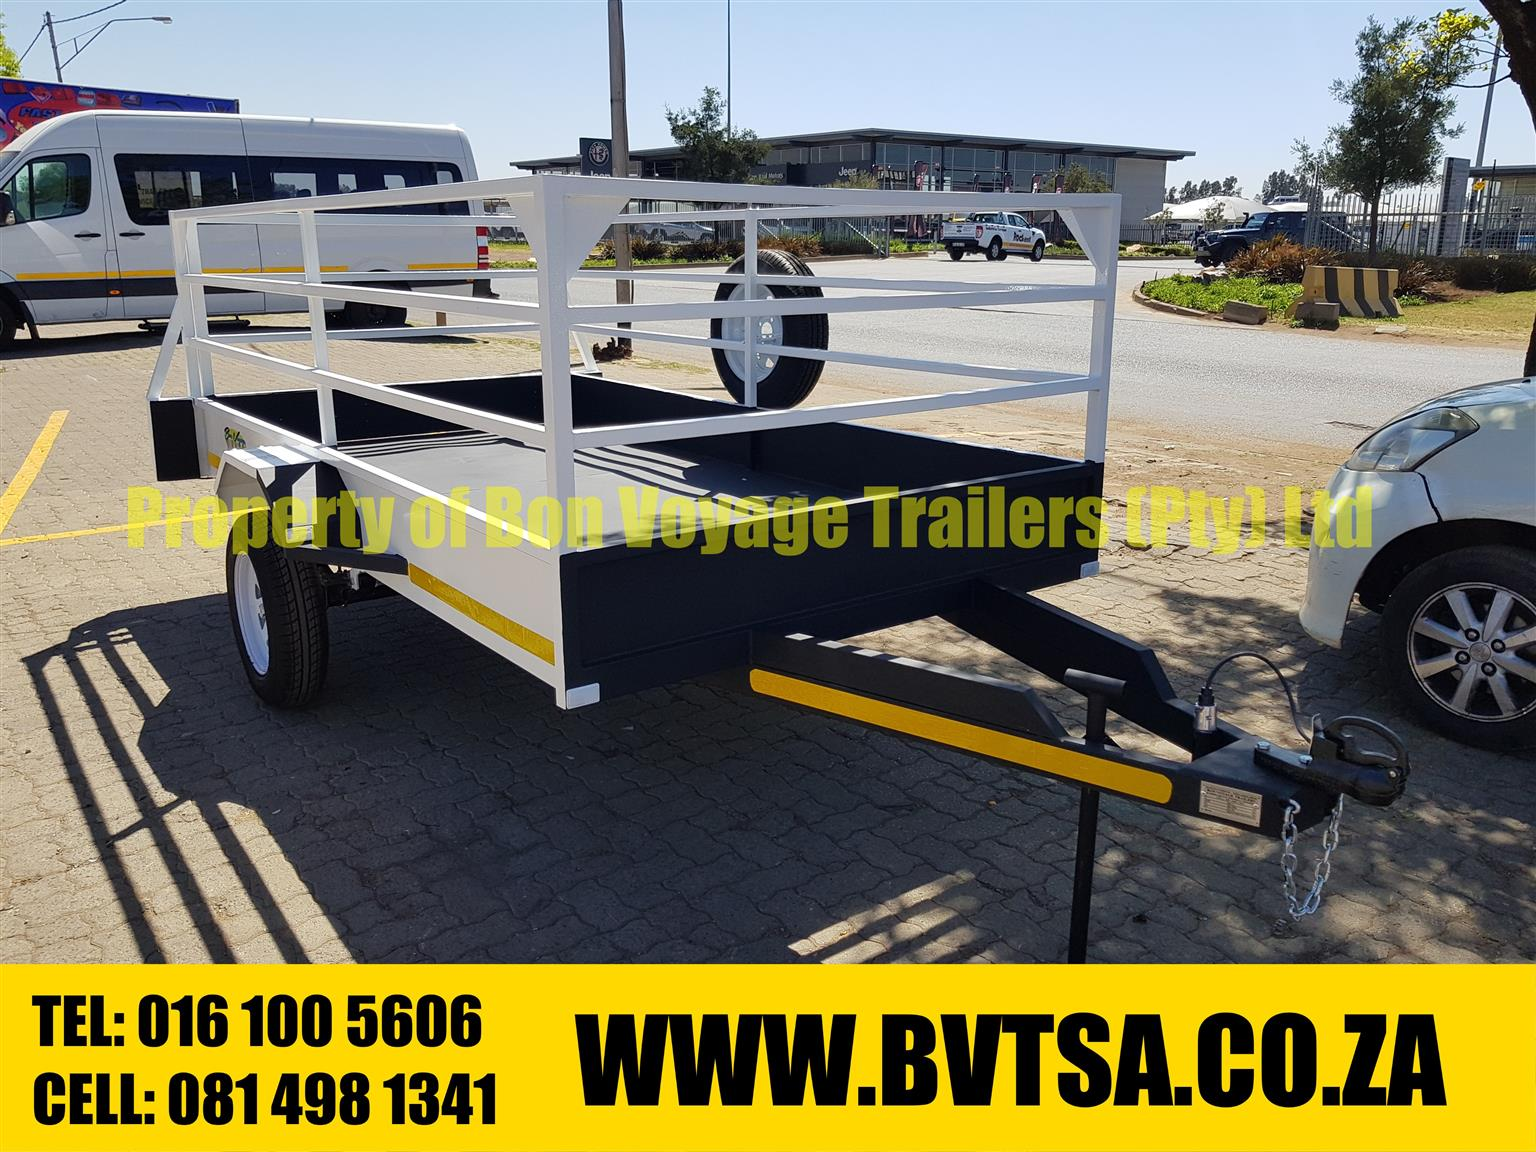 3 Meter Trailer For Sale